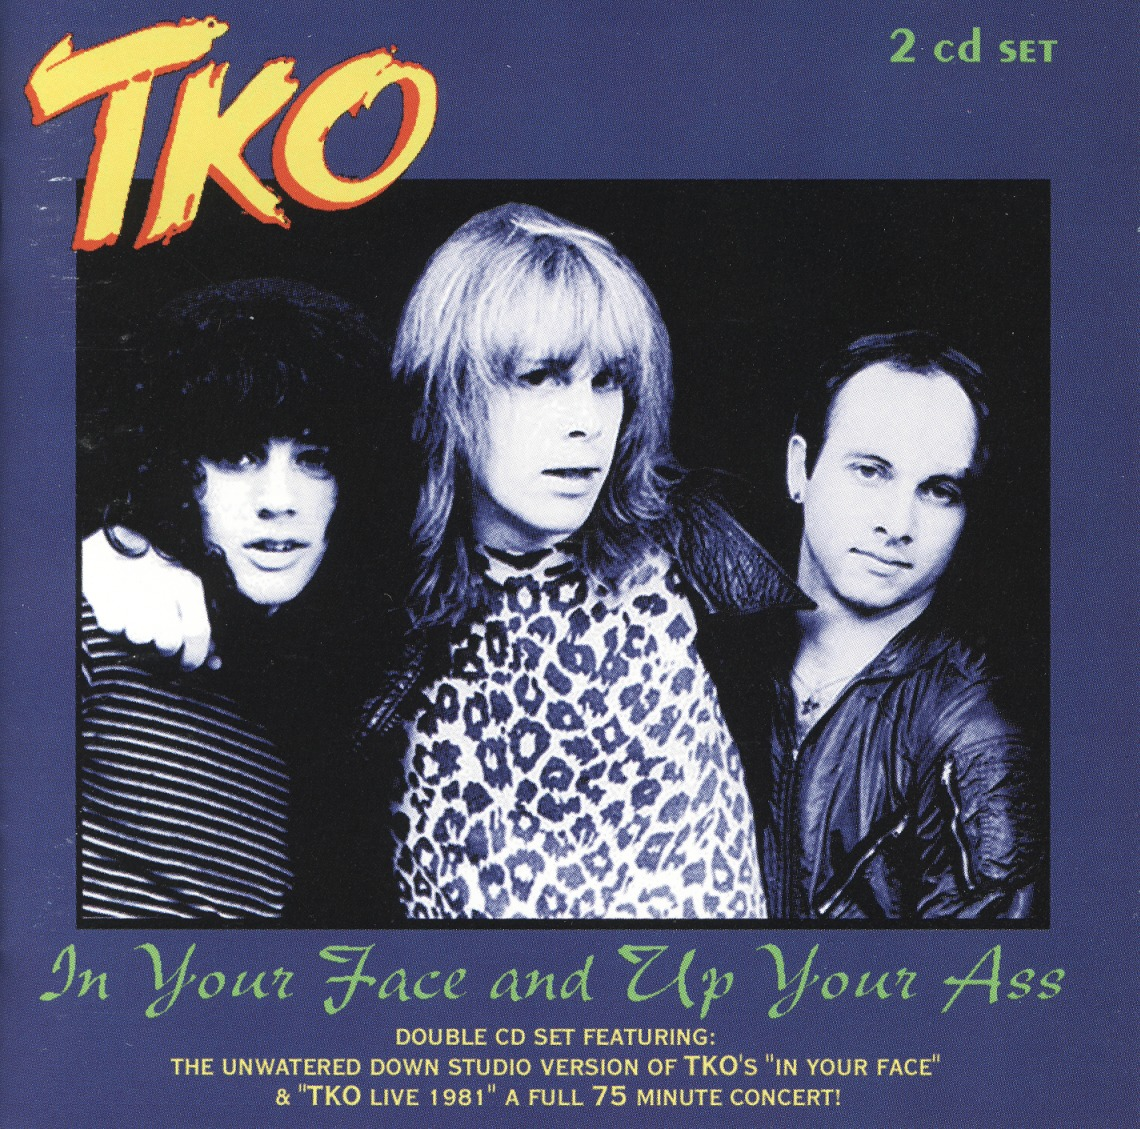 TKO (US) / In Your Face And Up Your Ass (2CD)